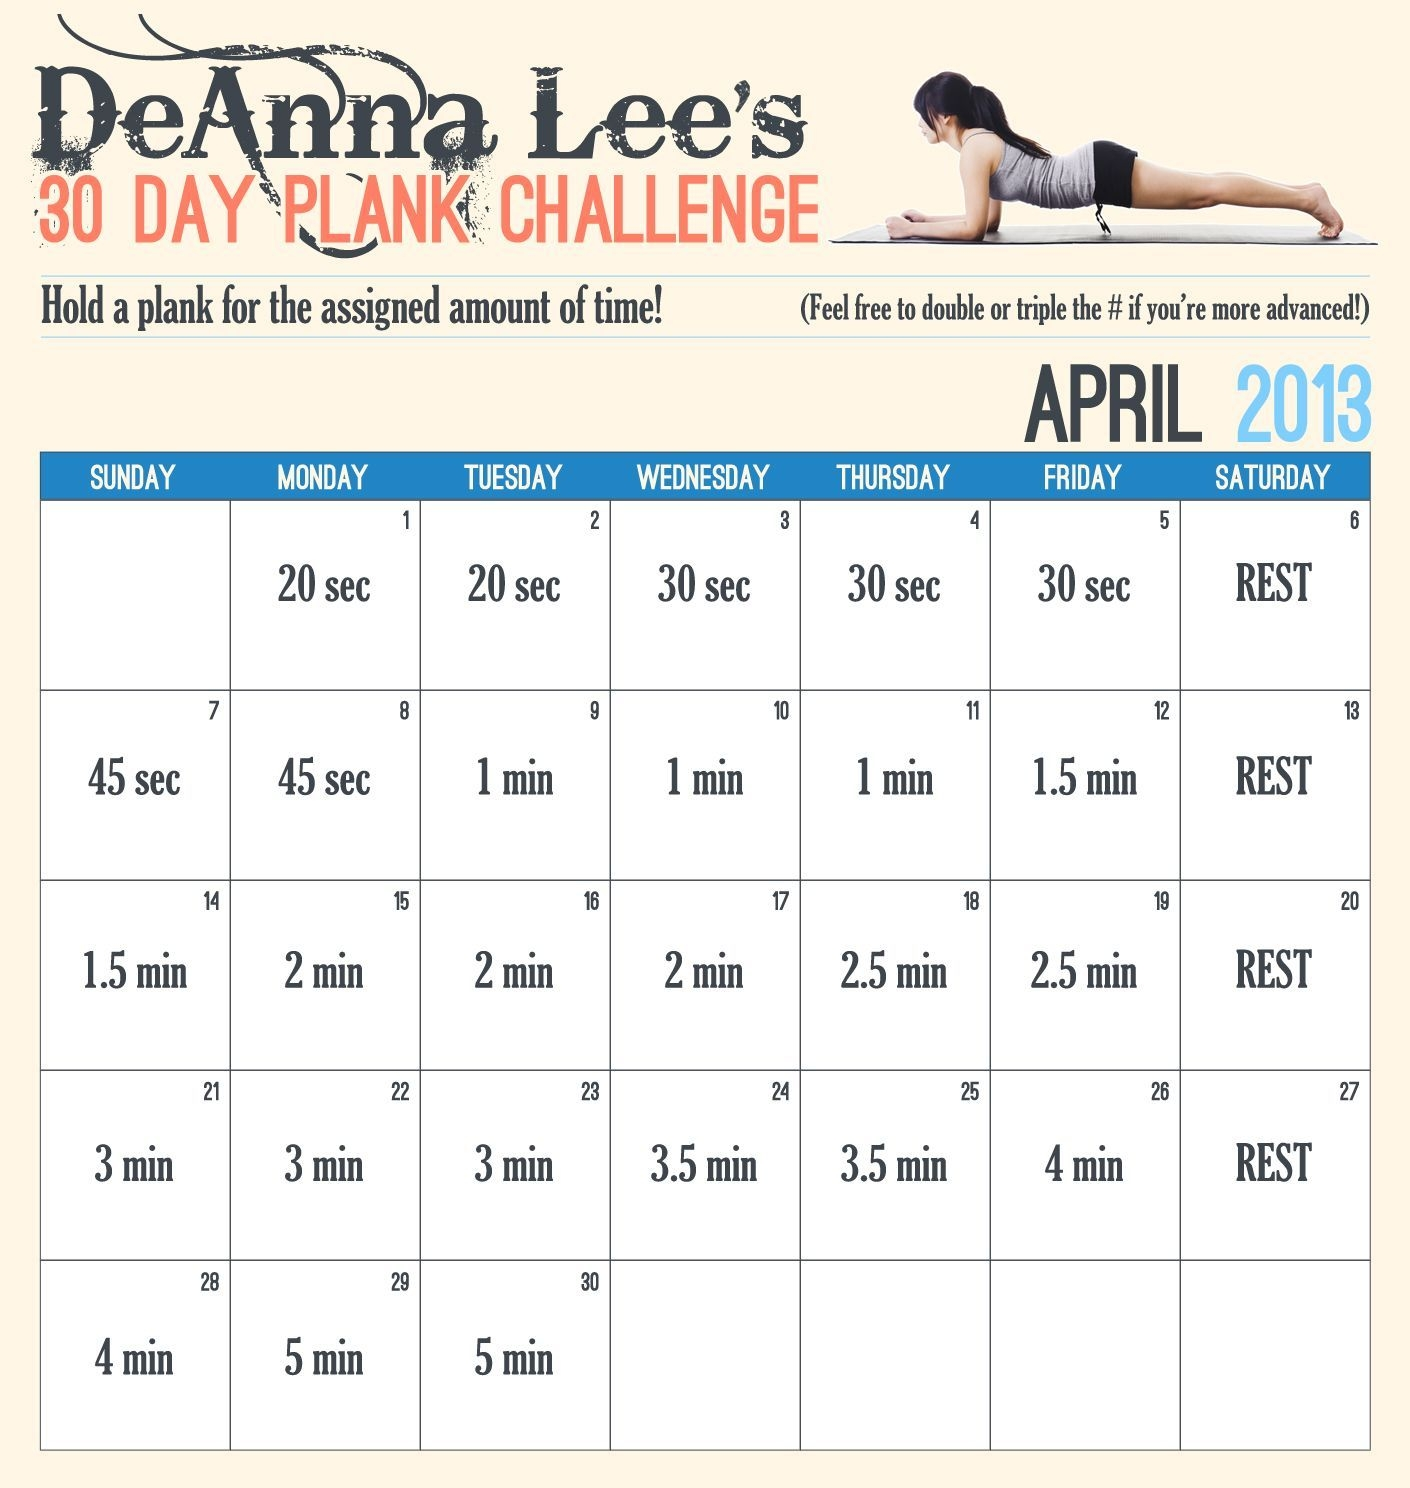 30 Day Plank Challenge. There Is Also A Free App For This